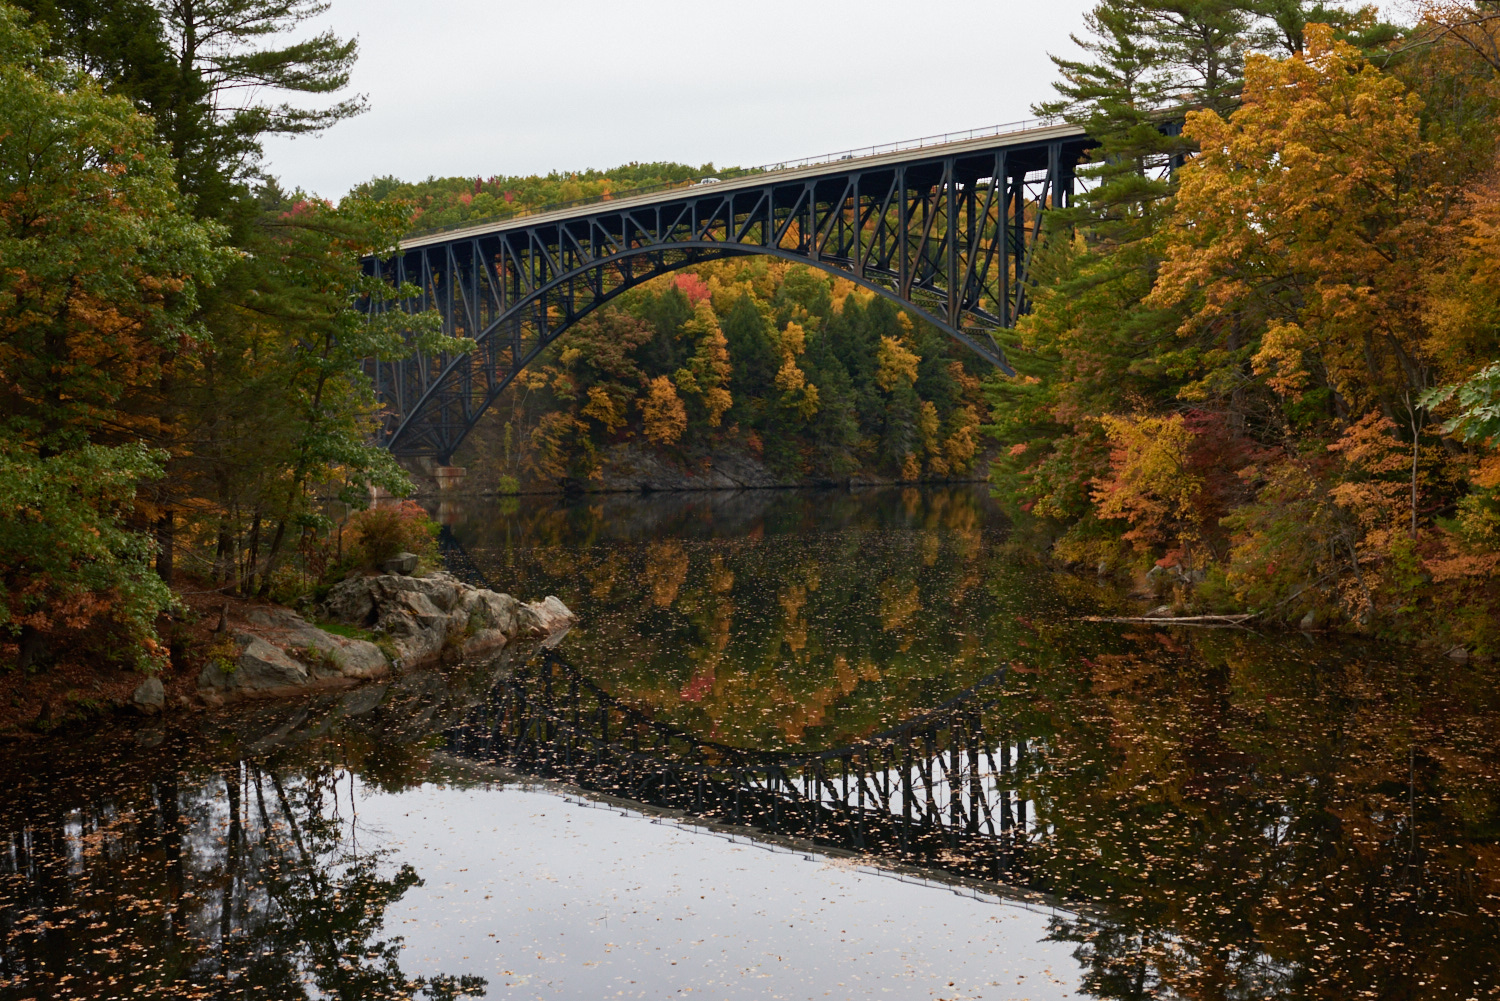 French King Bridge, Millers Falls, MA. © 2016 harlan erskine.